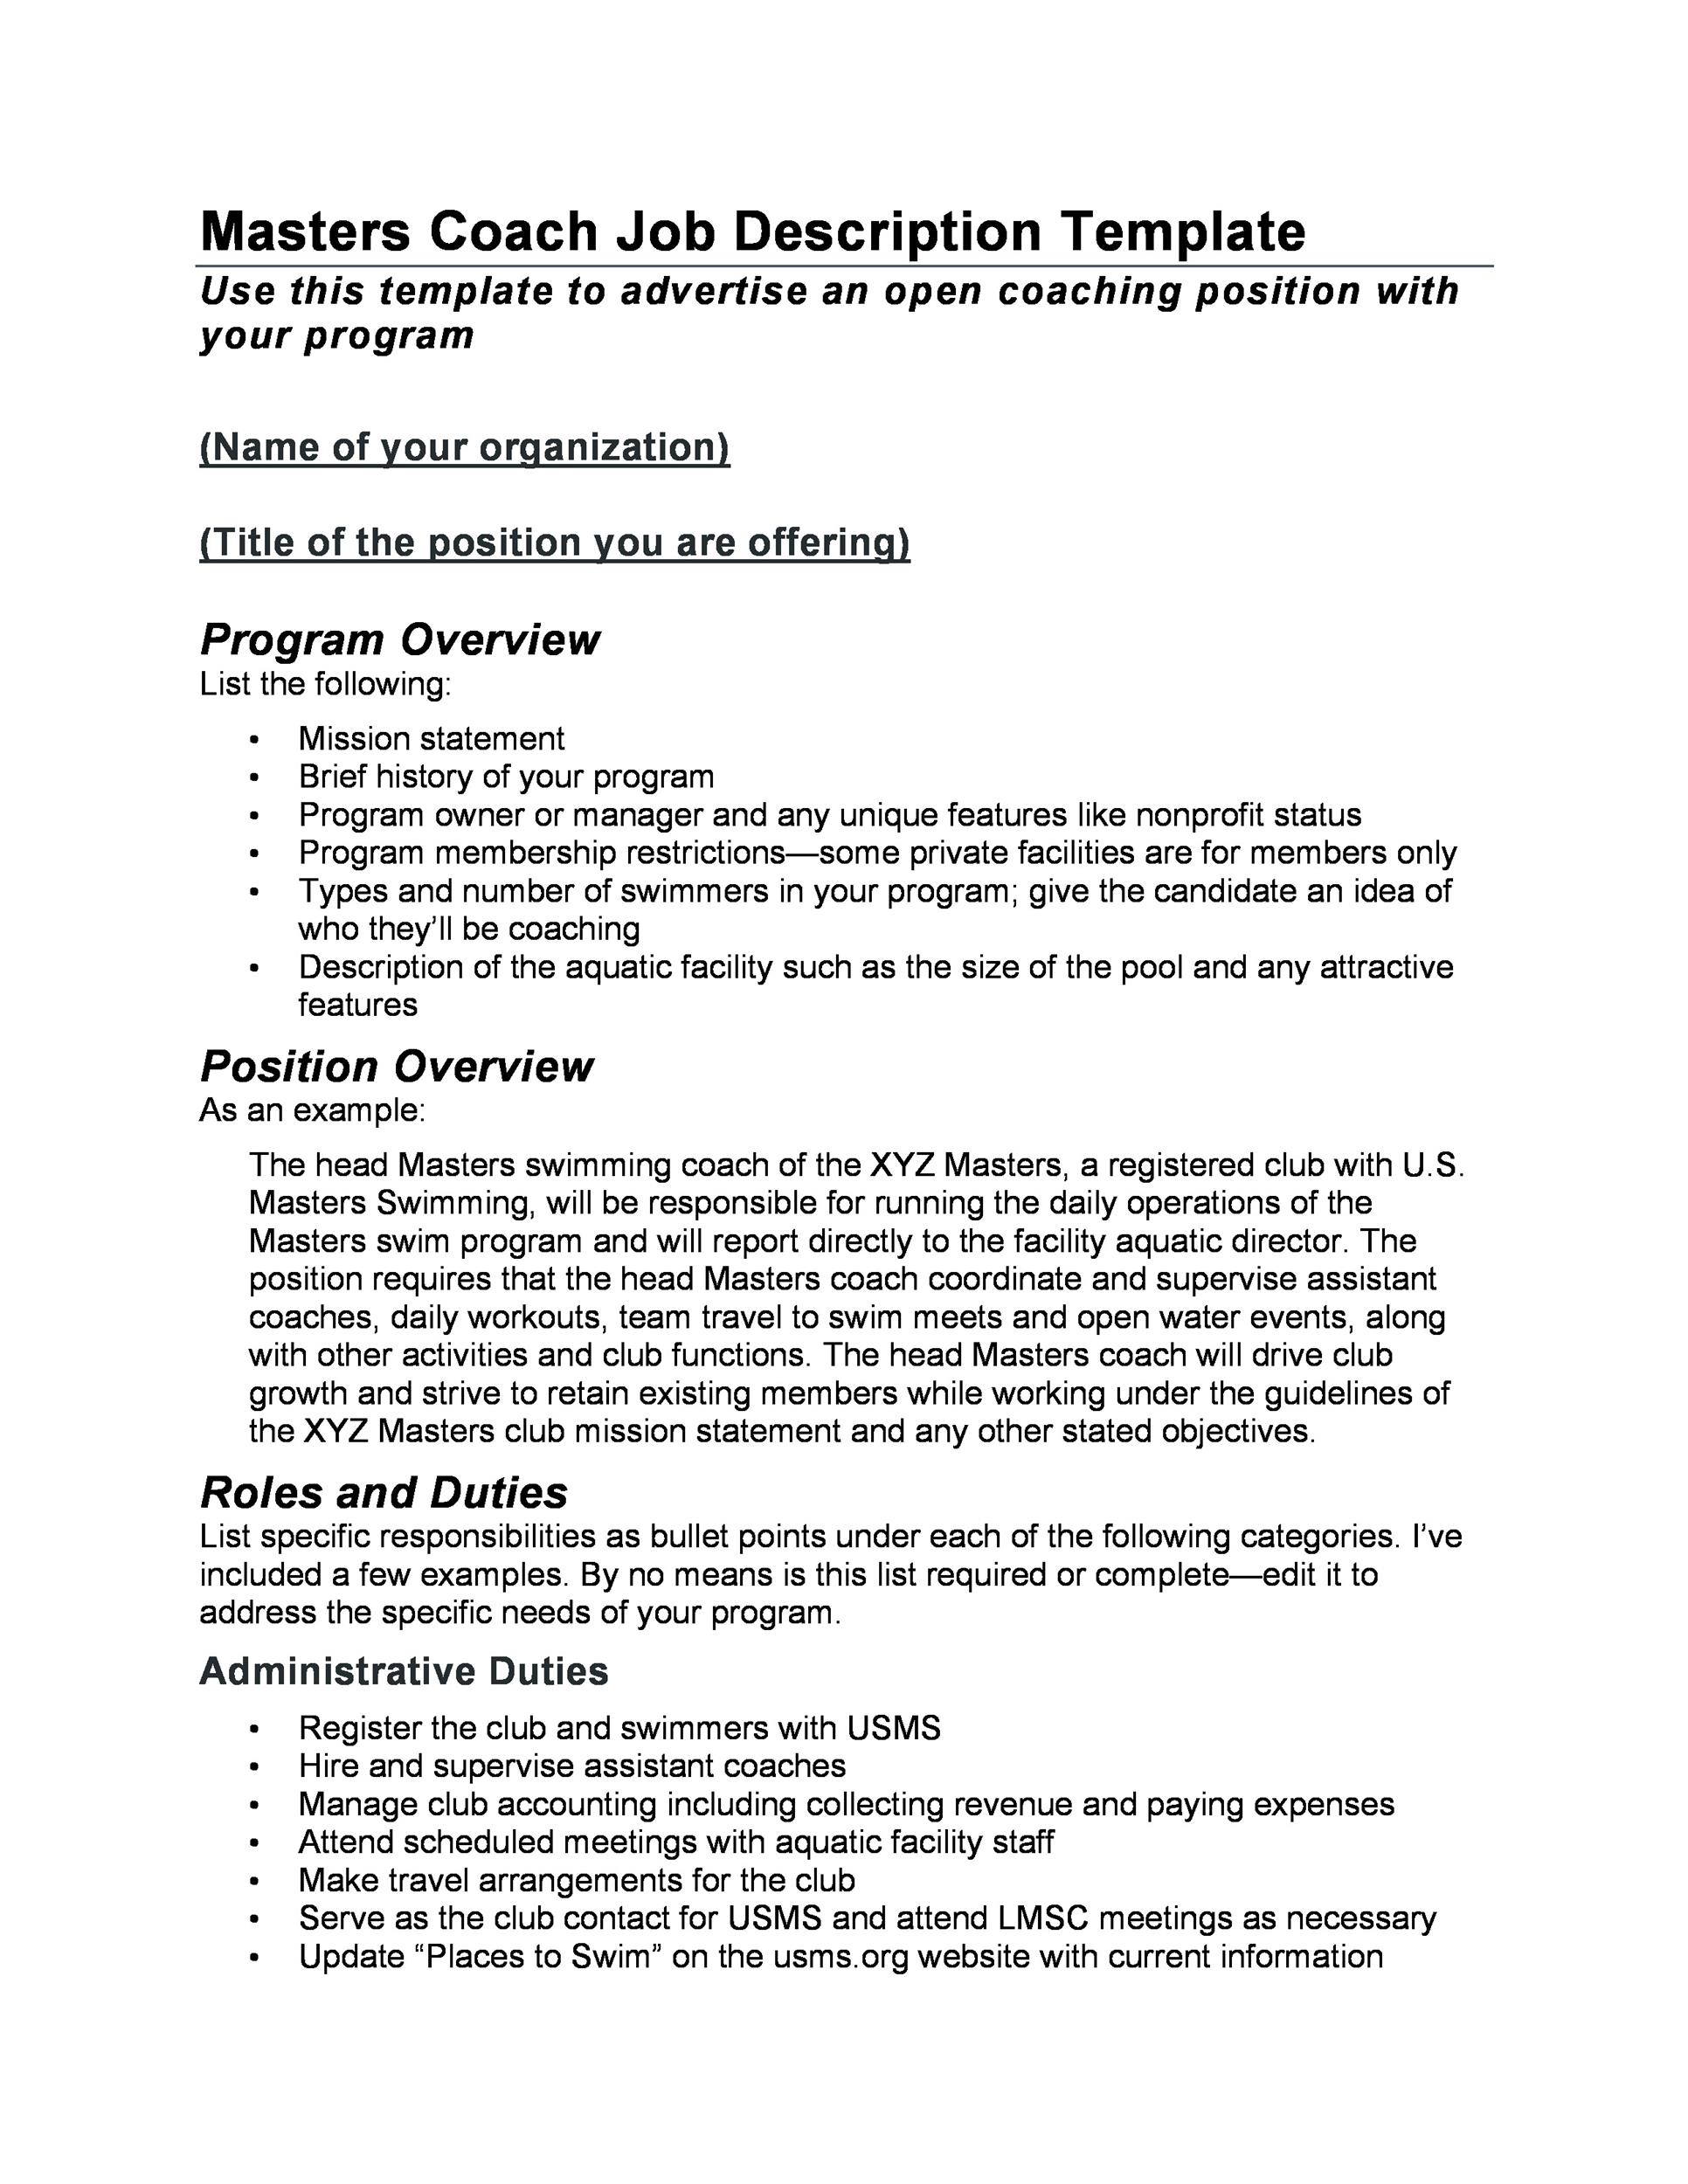 job description templates examples template lab job description template 08